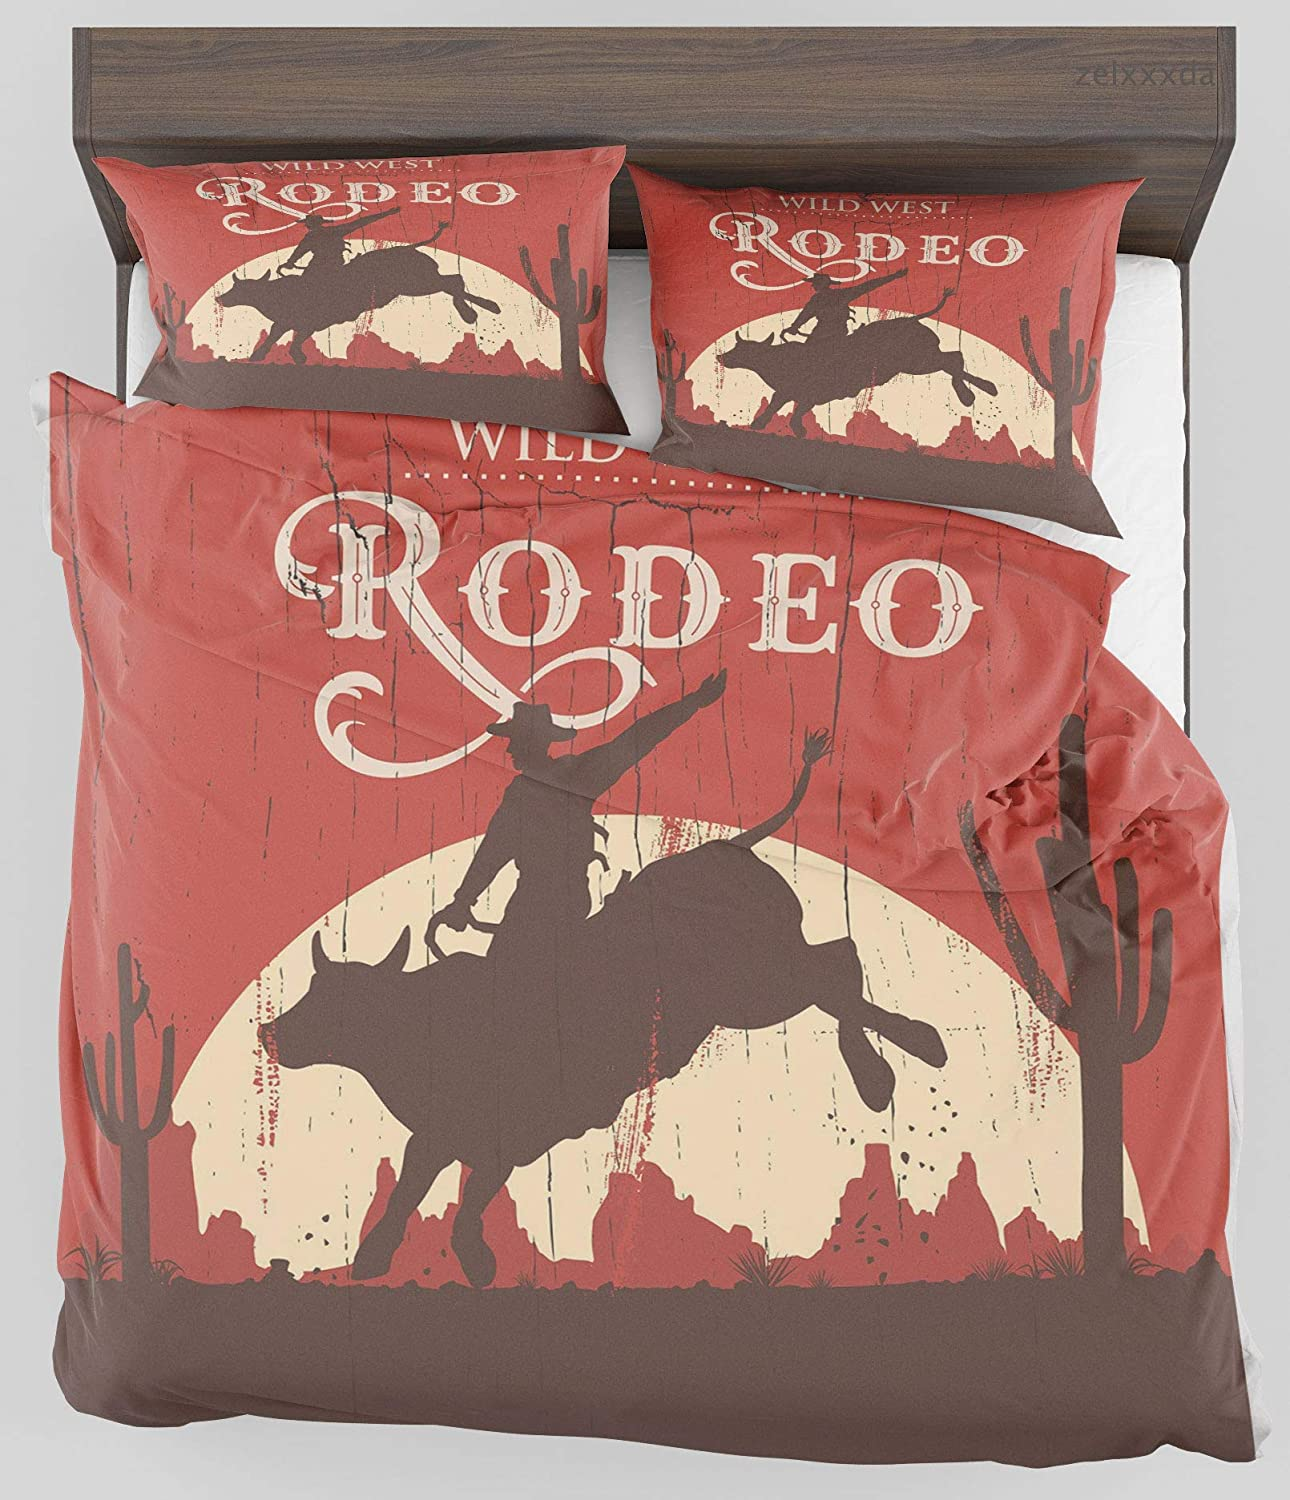 ZELXXXDA Decor Bedding Set Vintage Rodeo Cowboy Riding Bull Wooden Old Sign Western Style Wilderness at Sunset Image Twin/Twin XL Size Duvet Cover with 2 Matching Pillow sham